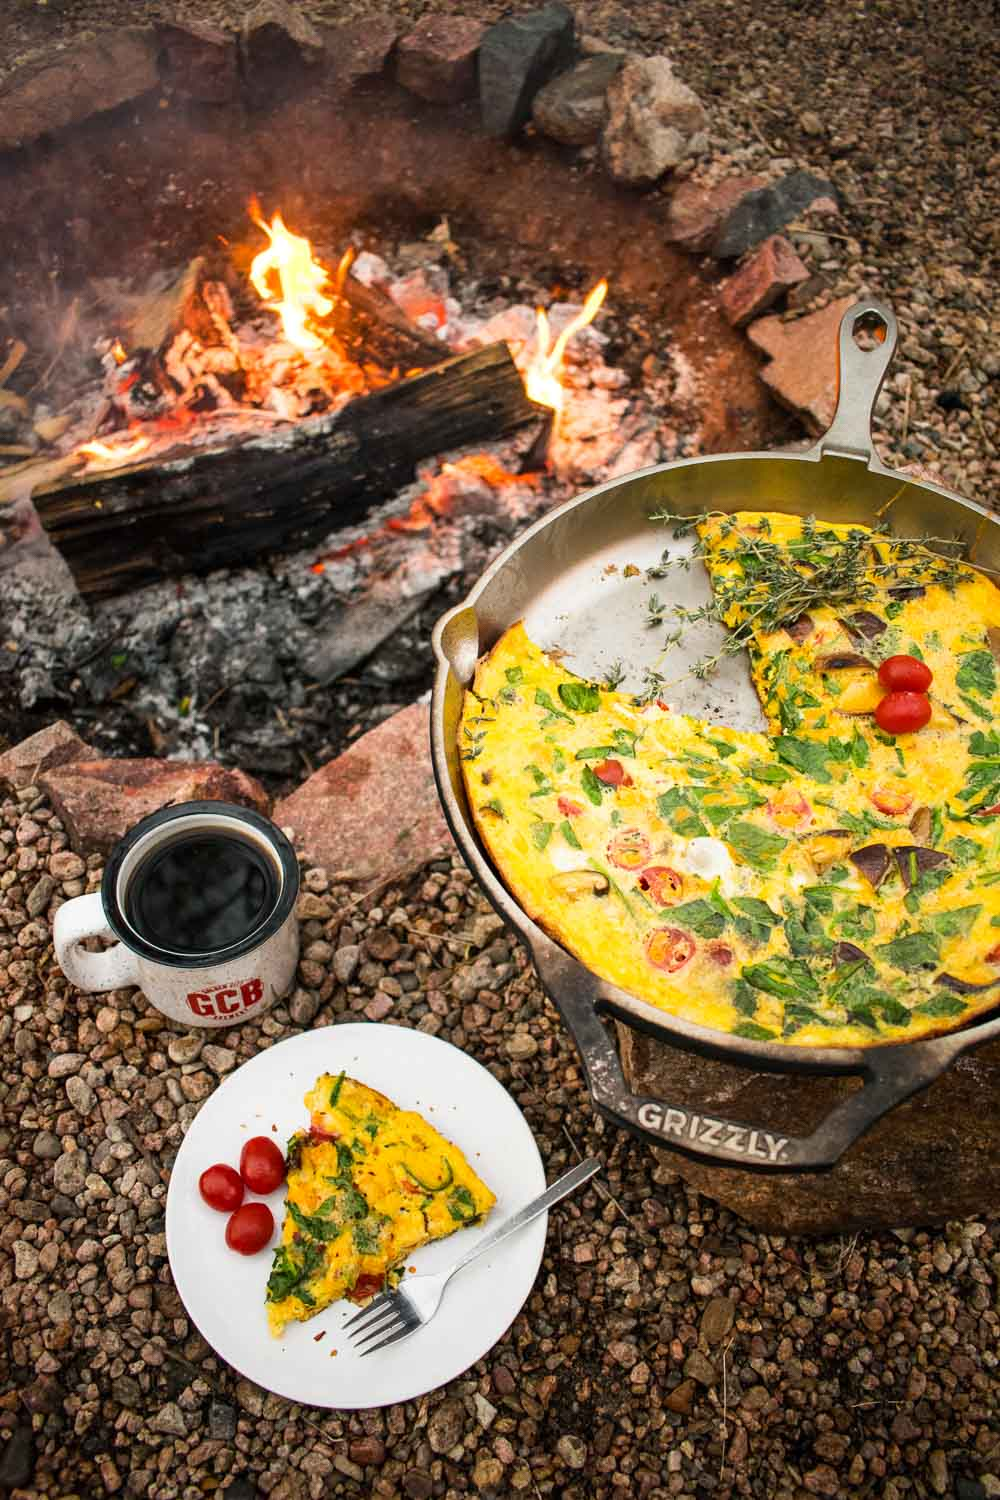 Easy crustless quiche is the perfect stress-free way to start a full day of adventures! Shake everything together in a bag at home, then just pour into a cast iron skillet set over the fire for a delicious camp breakfast.